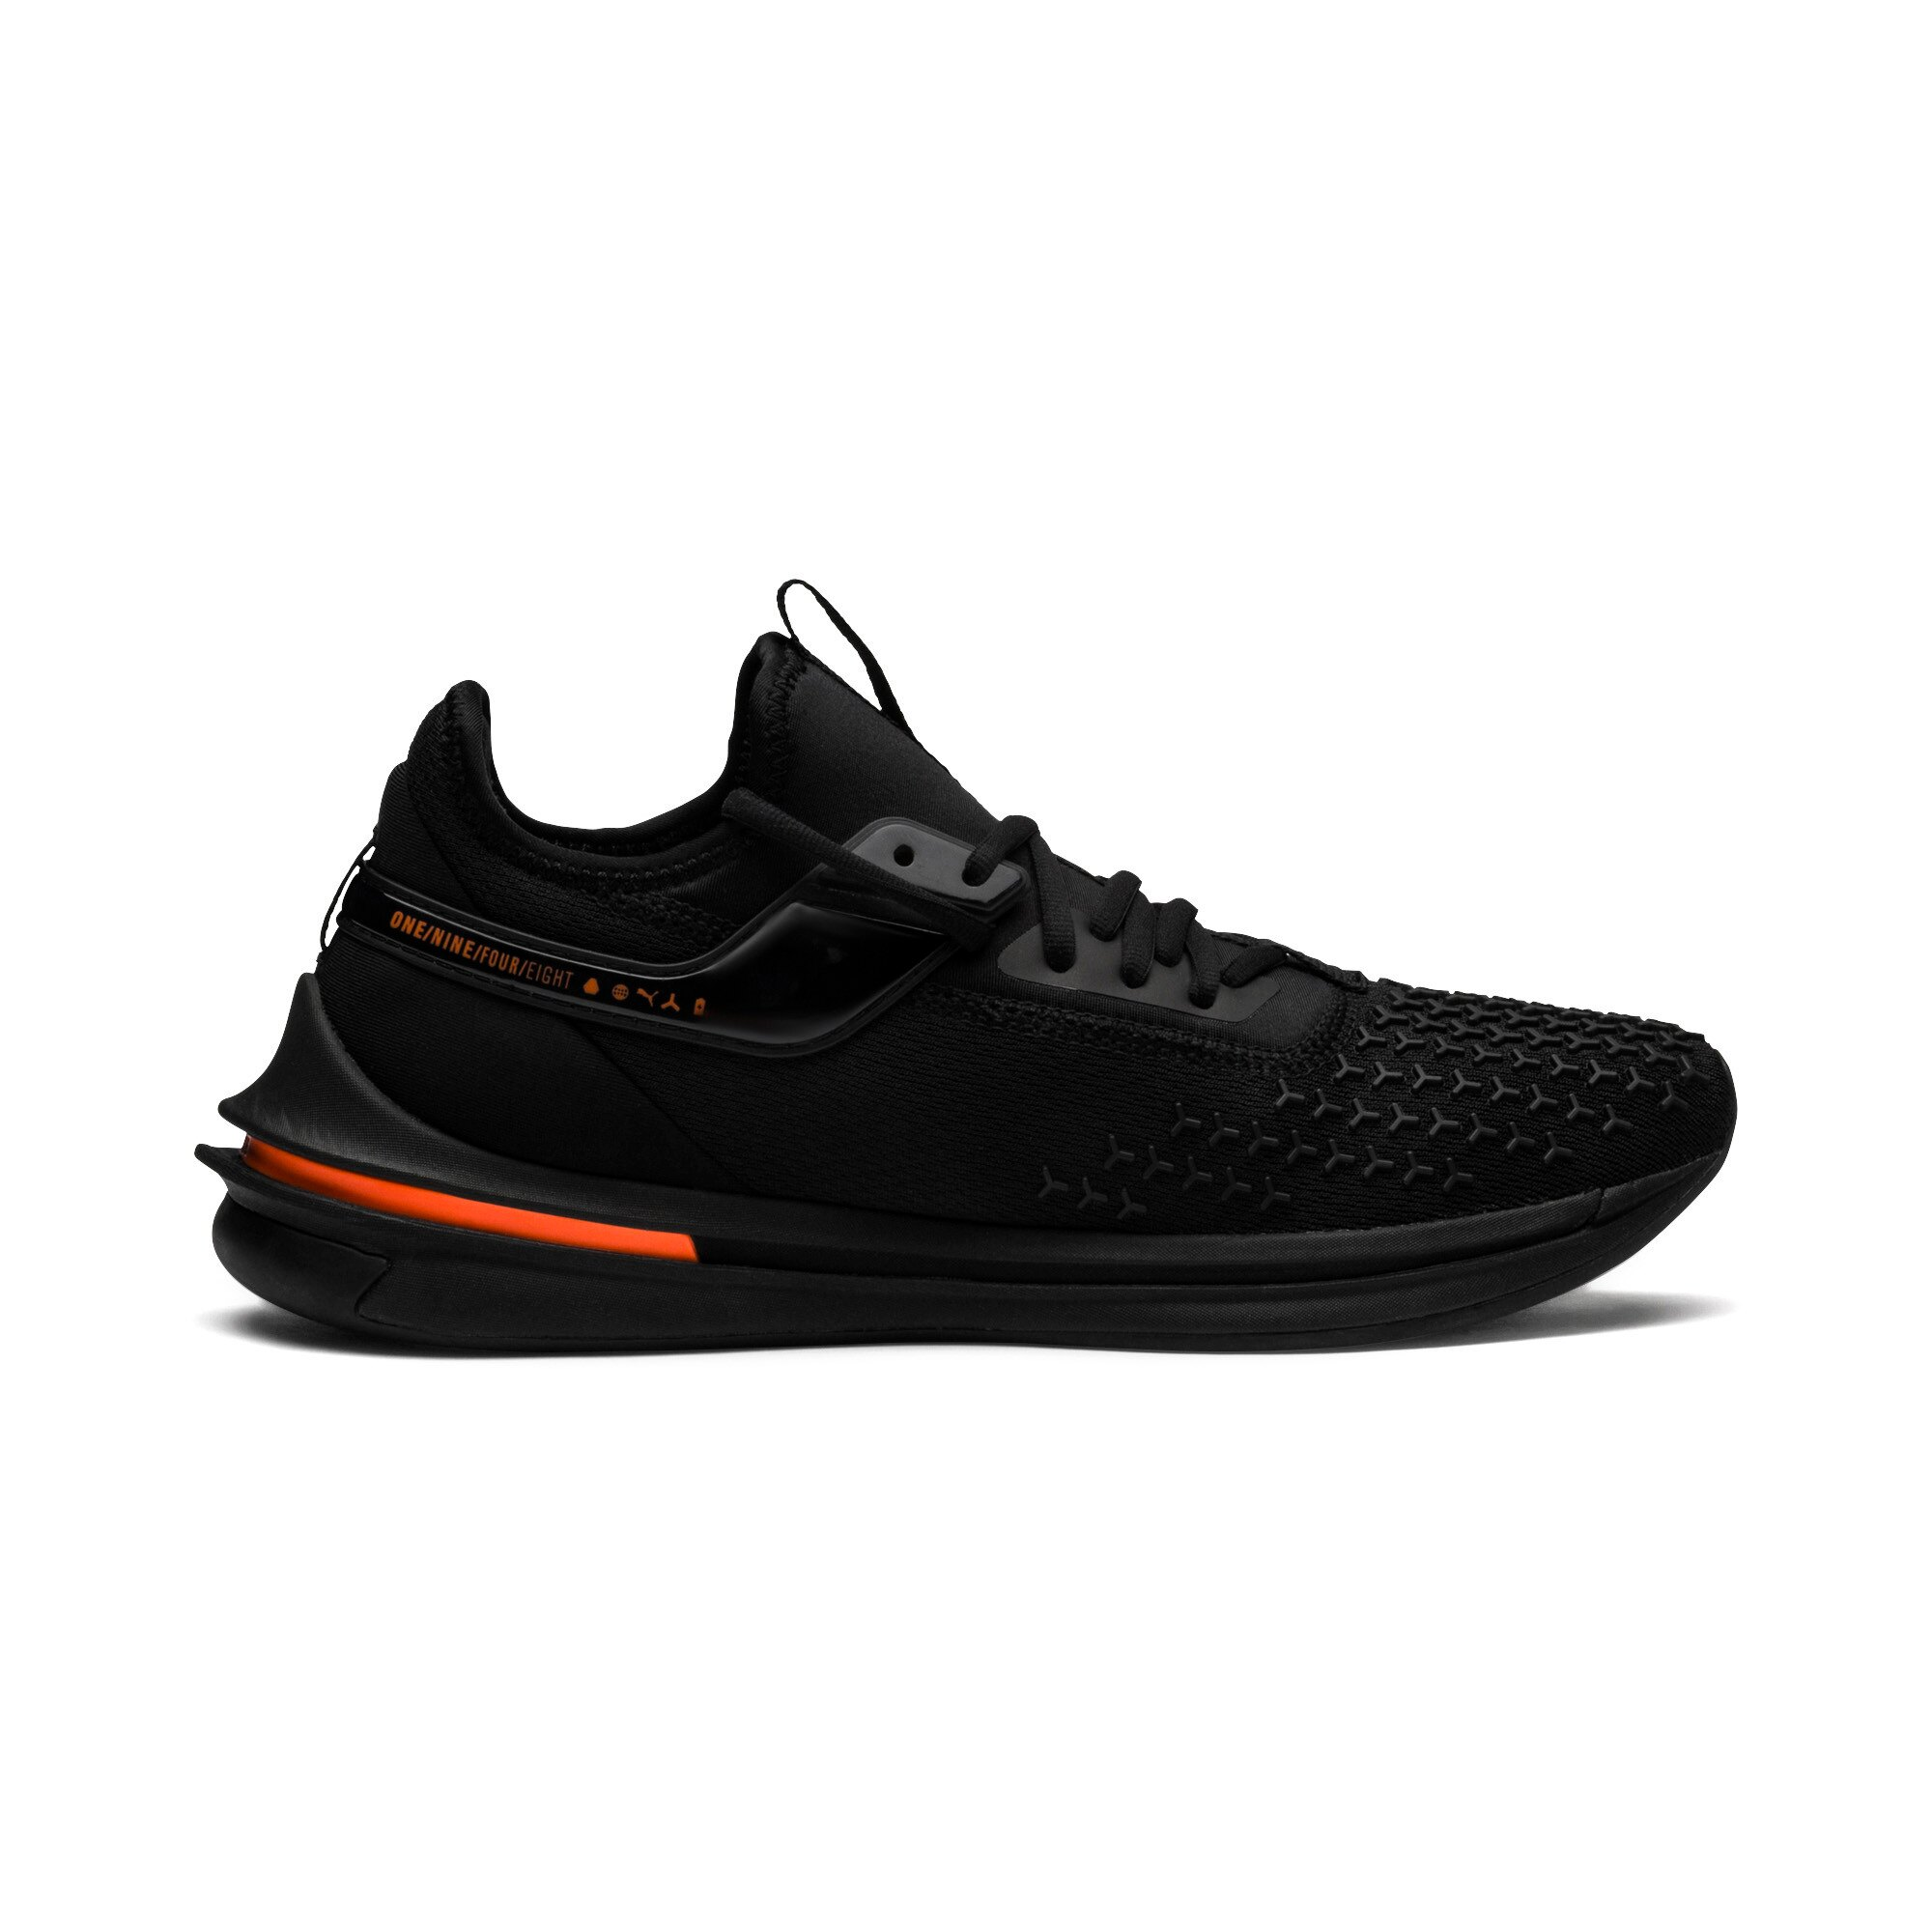 57234987a6c Official Puma Store  PUMA IGNITE Limitless SR-71 Unrest Sneakers ...